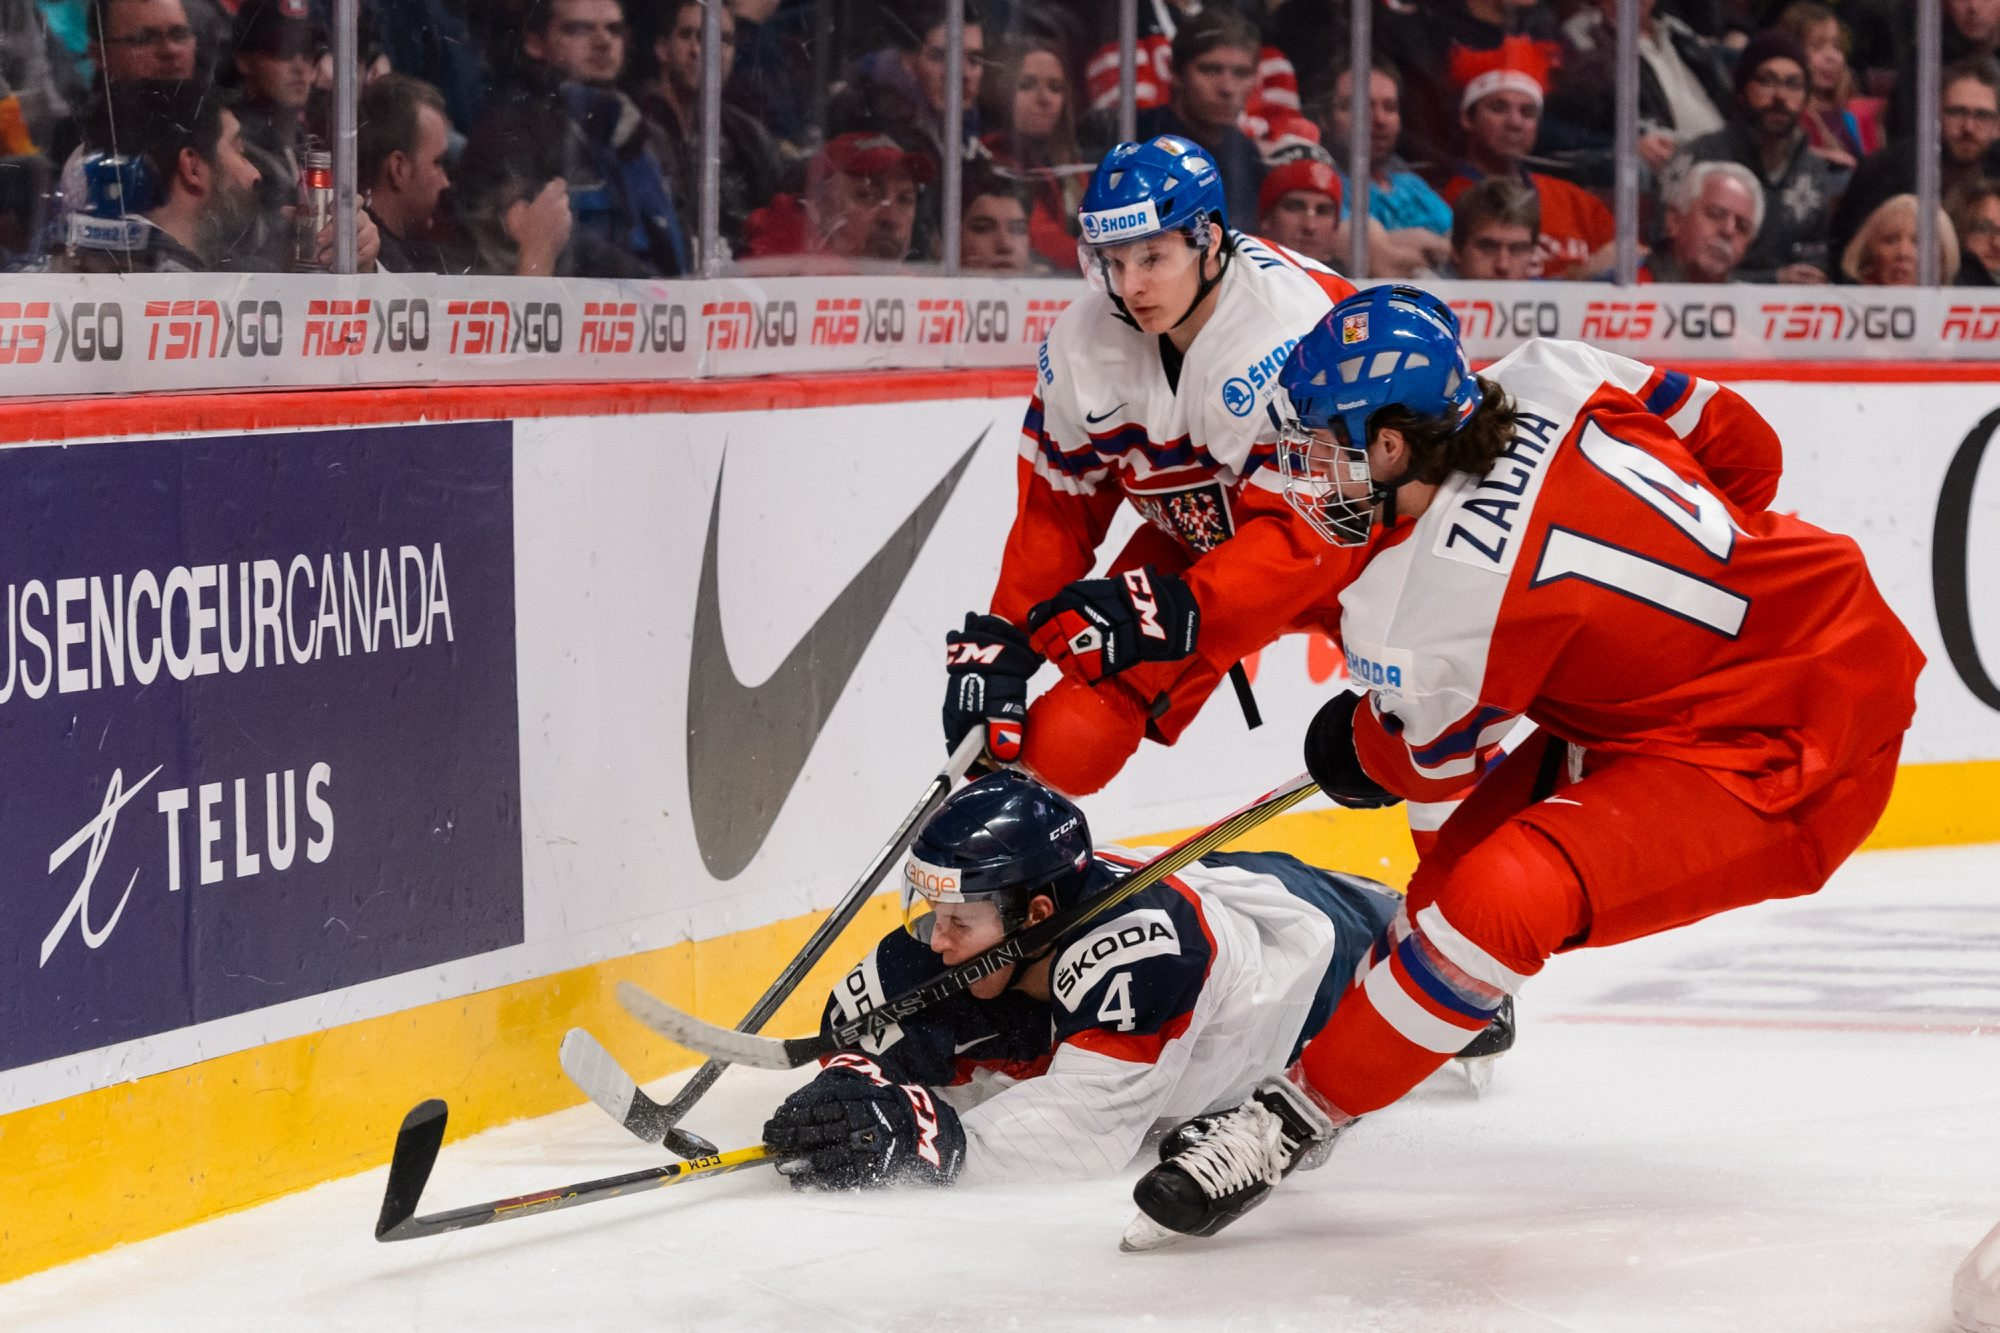 MONTREAL, QC - JANUARY 02:  Pavel Zacha #14 of Team Czech Republic takes down Mislav Rosandic #4 of Team Slovakia while chasing the puck in a quarterfinal round during the 2015 IIHF World Junior Hockey Championships at the Bell Centre on January 2, 2015 in Montreal, Quebec, Canada.  (Photo by Minas Panagiotakis/Getty Images)